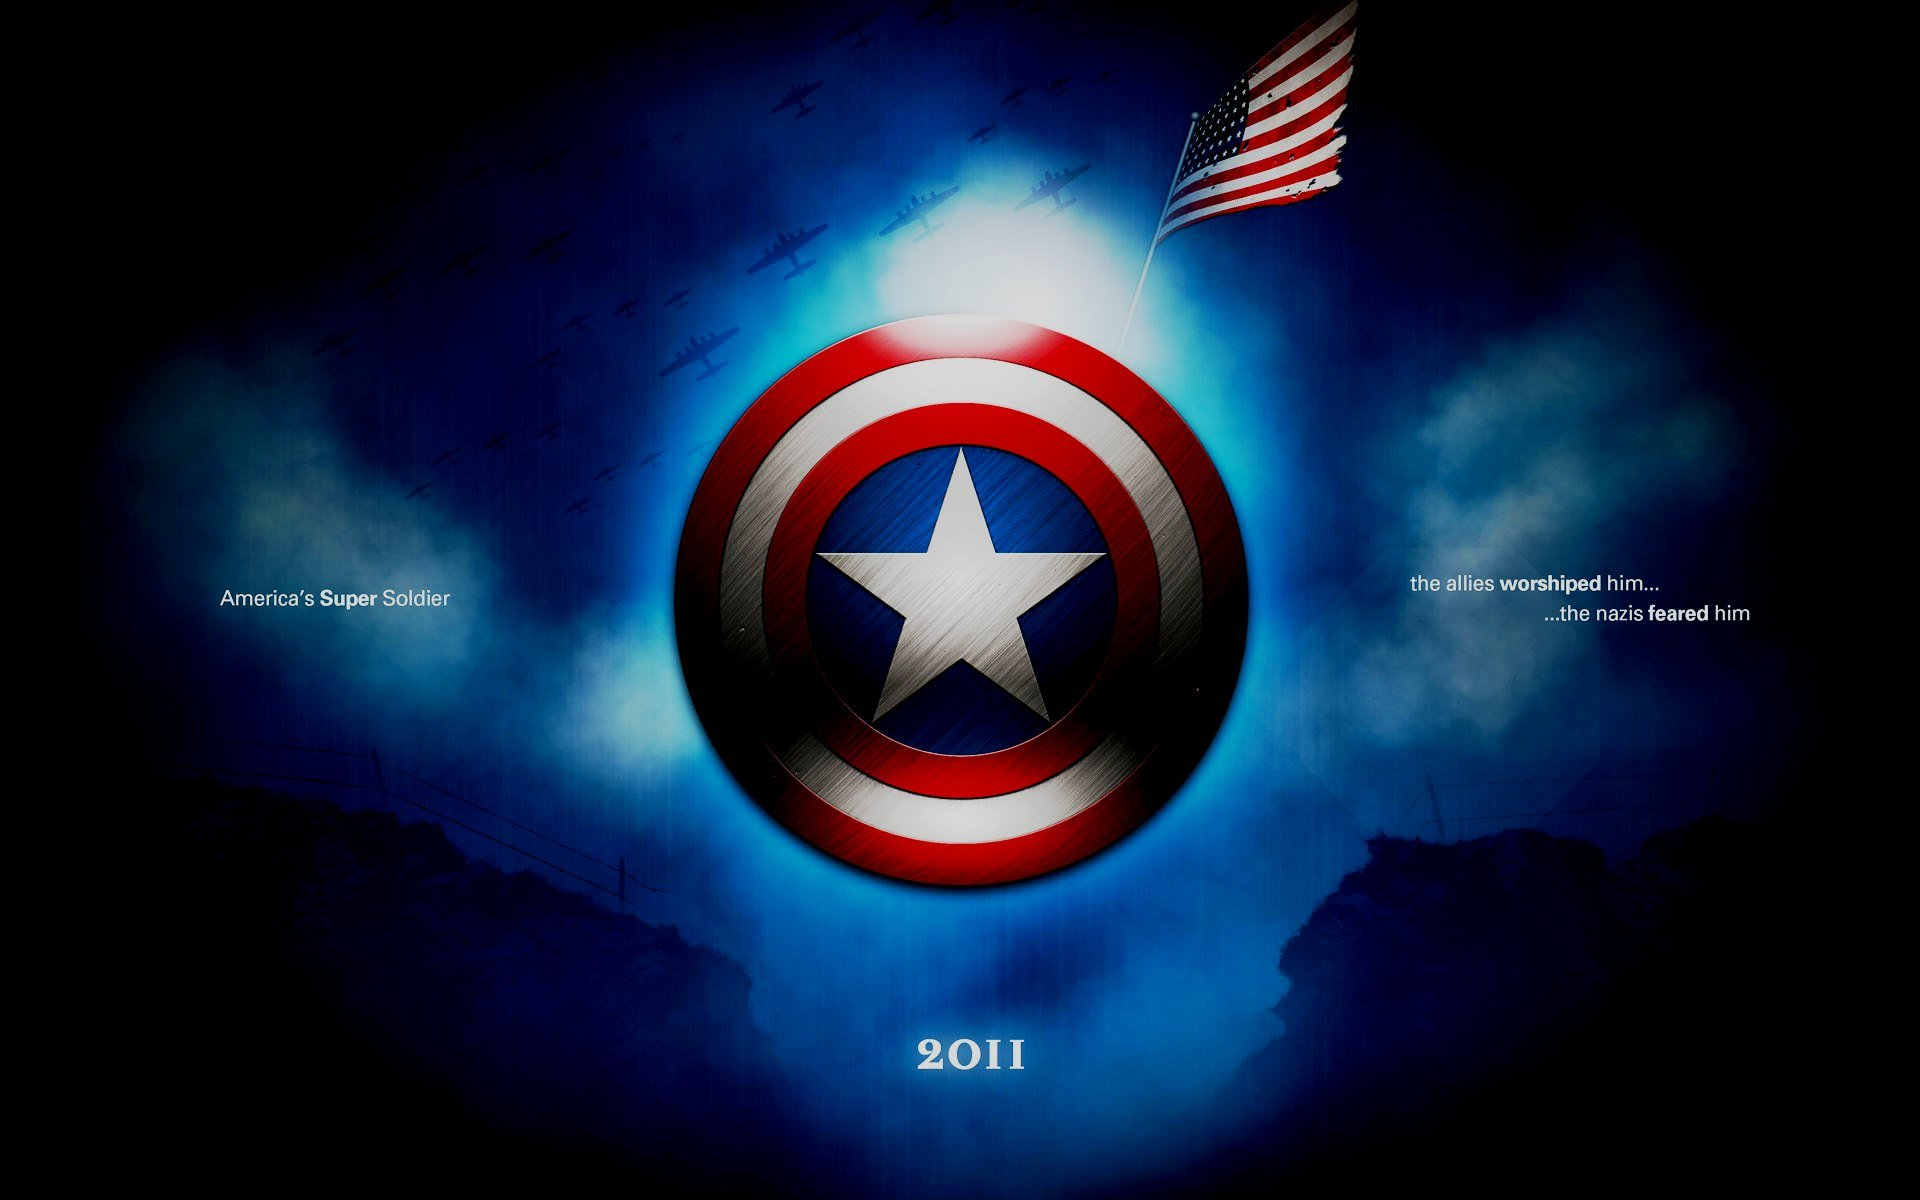 Superhero Captain America Wallpaper Captain America Wallpaper Logo 1920x1200